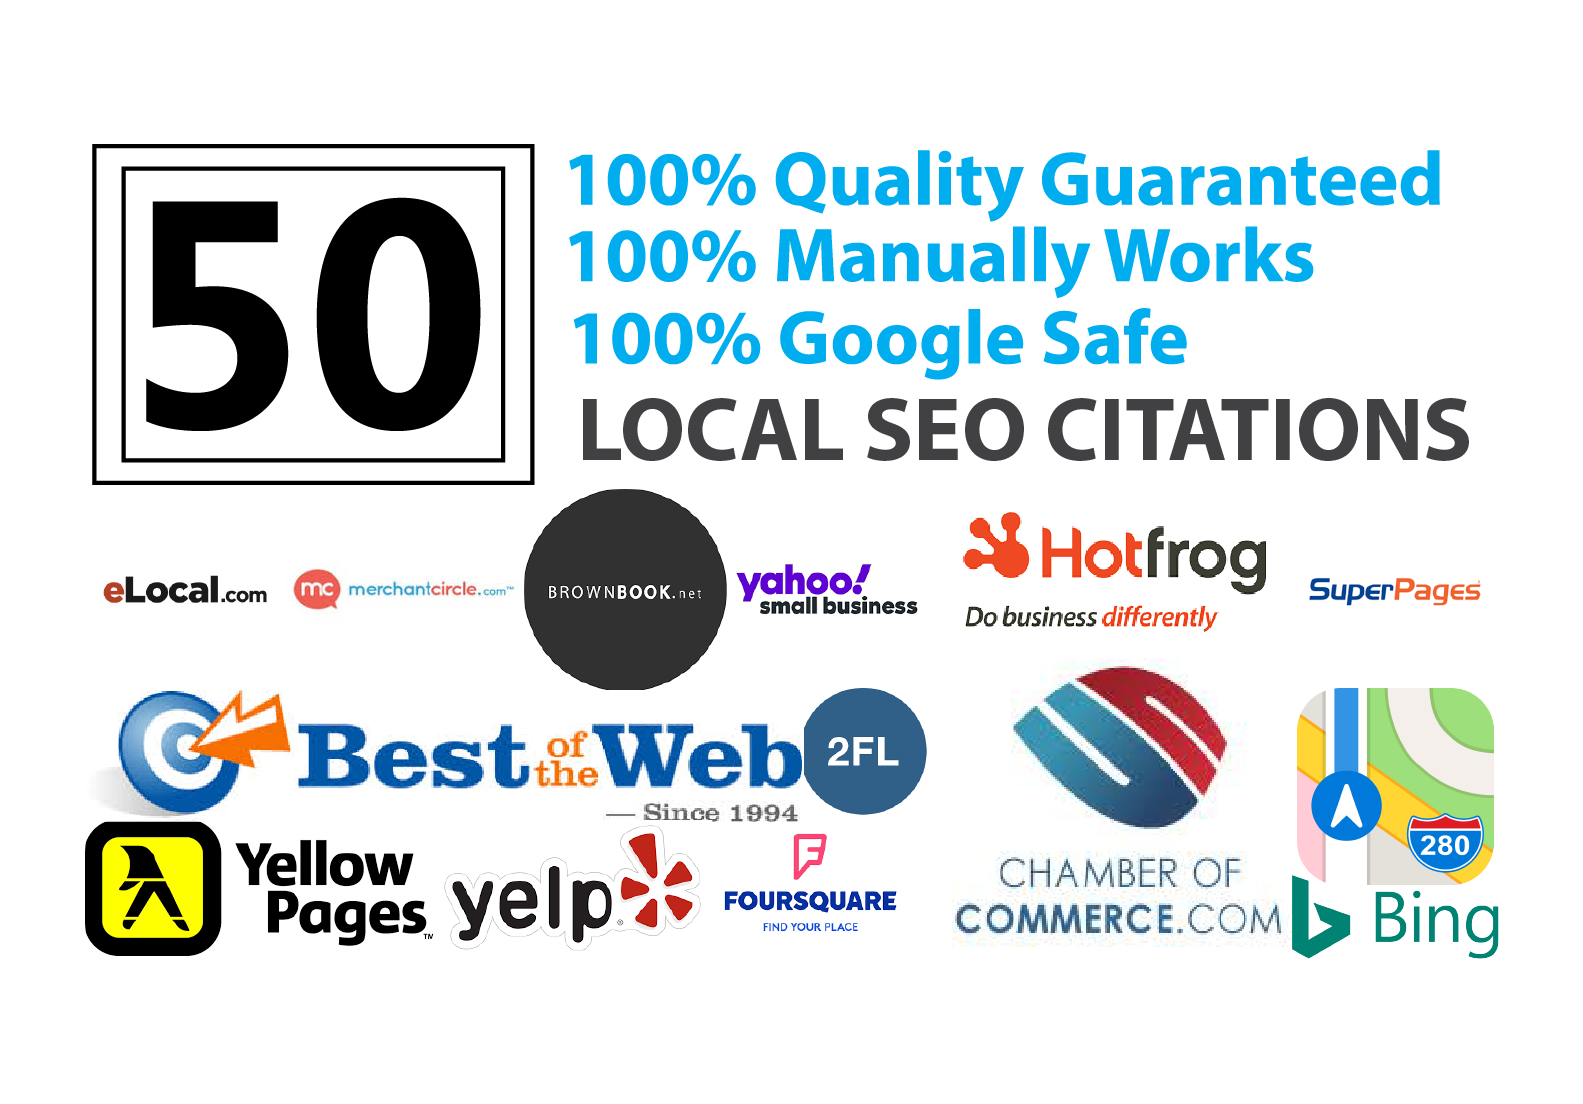 Top 50 Local SEO Citations From Brightlocal,  Yext,  Moz,  Whitespark For Google 1st Page Rankings